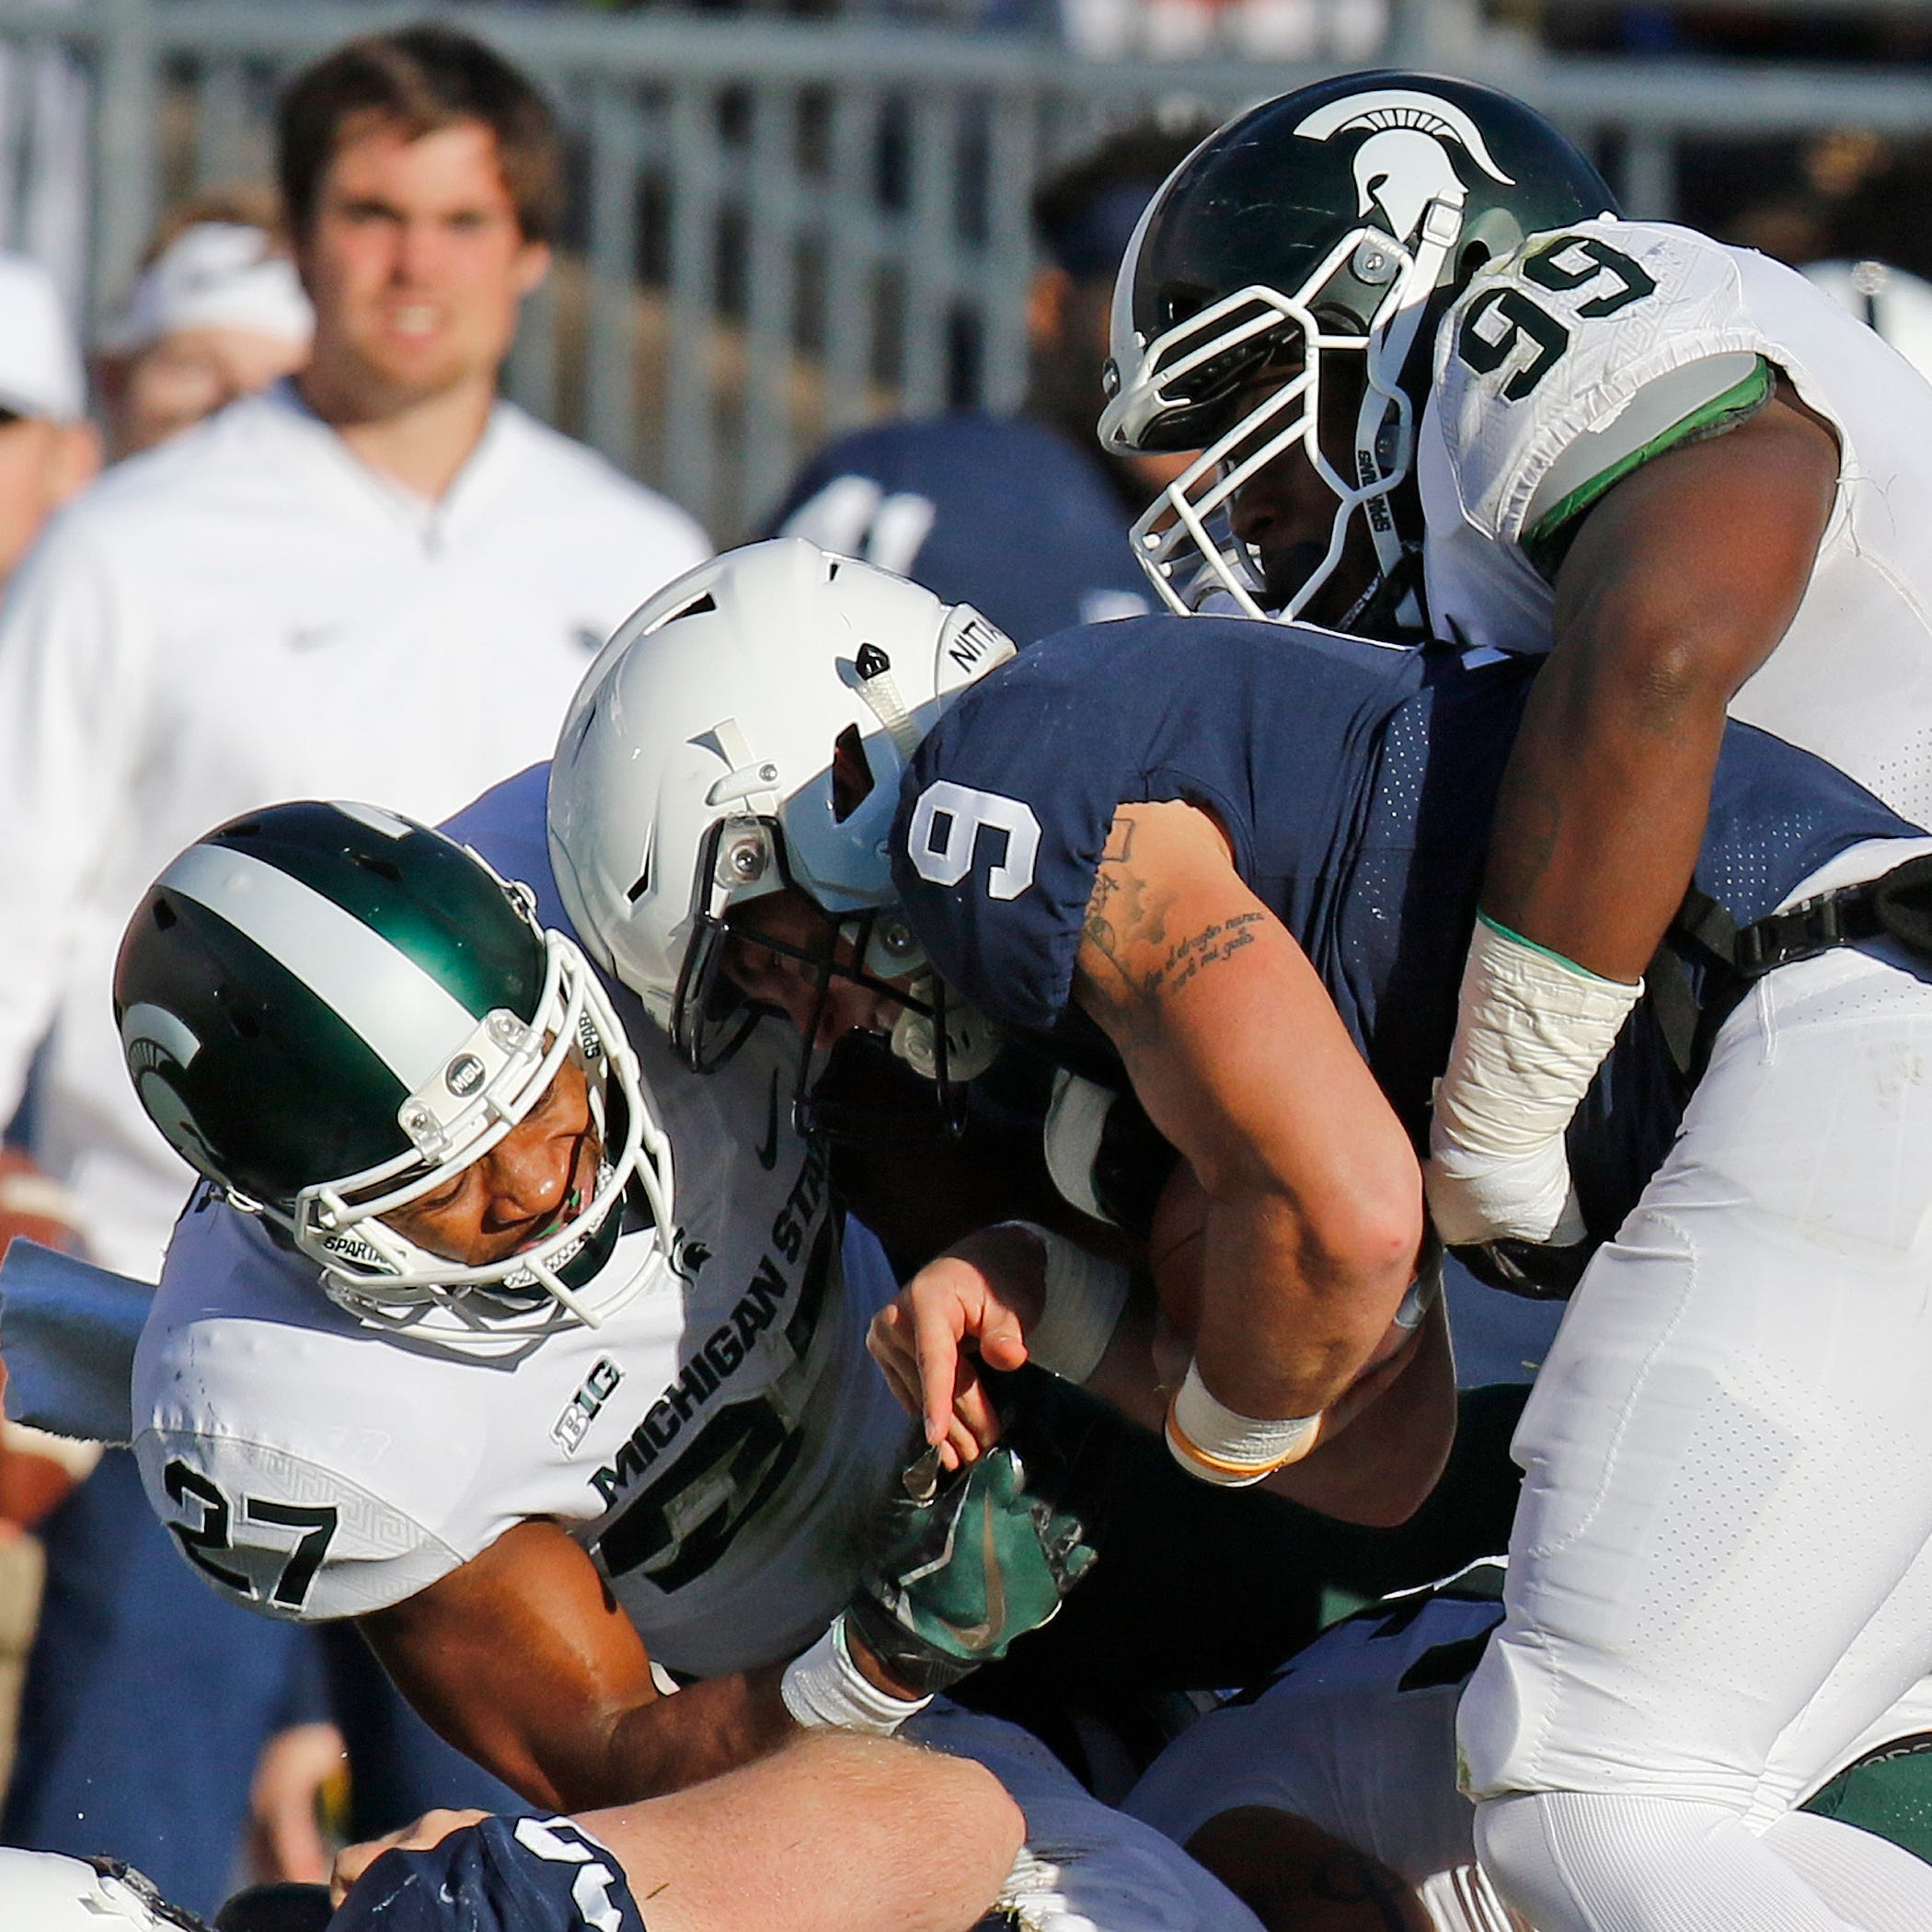 Michigan State football's defense 'stayed in the fight' vs. Penn State